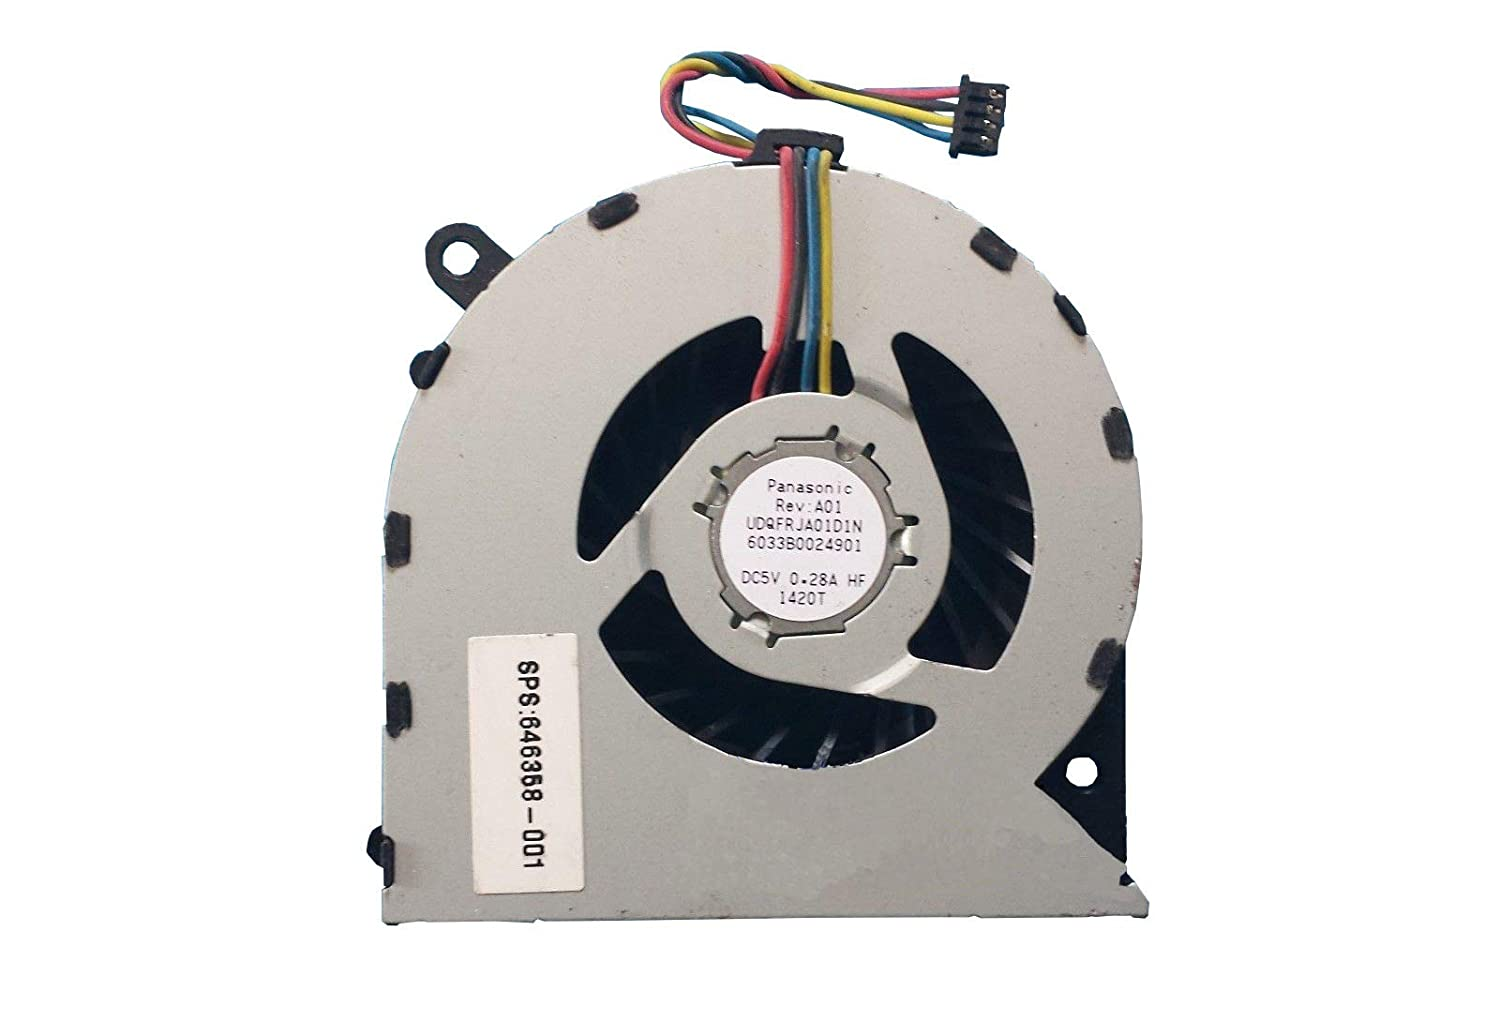 Z-one Fan Replacement for HP Probook 4330s 4331s 4430s 4431s 4435s 4436s Series CPU Cooling Fan 646358-001 4-Wires 4-Pins